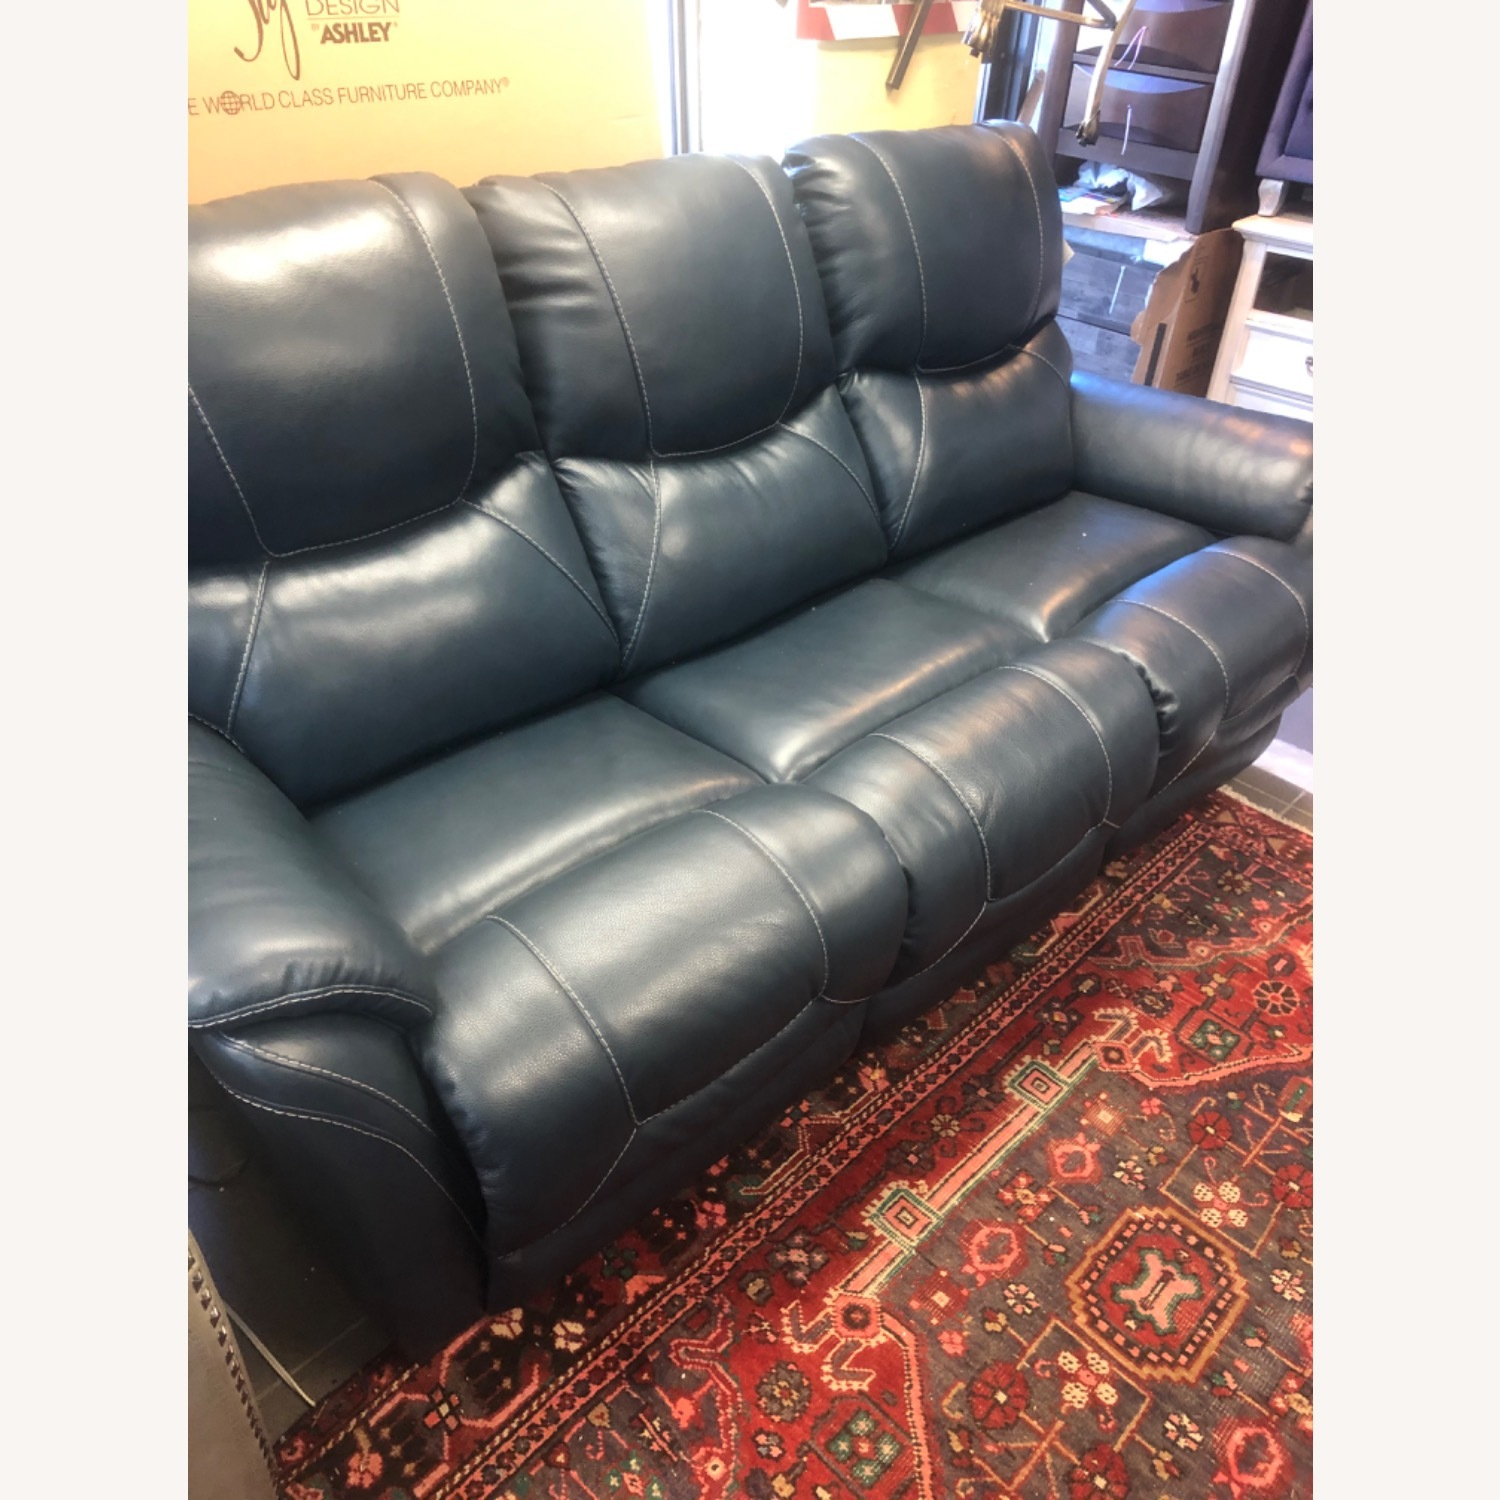 Ashley Furniture Genuine Leather Power Reclining Sofa - image-2